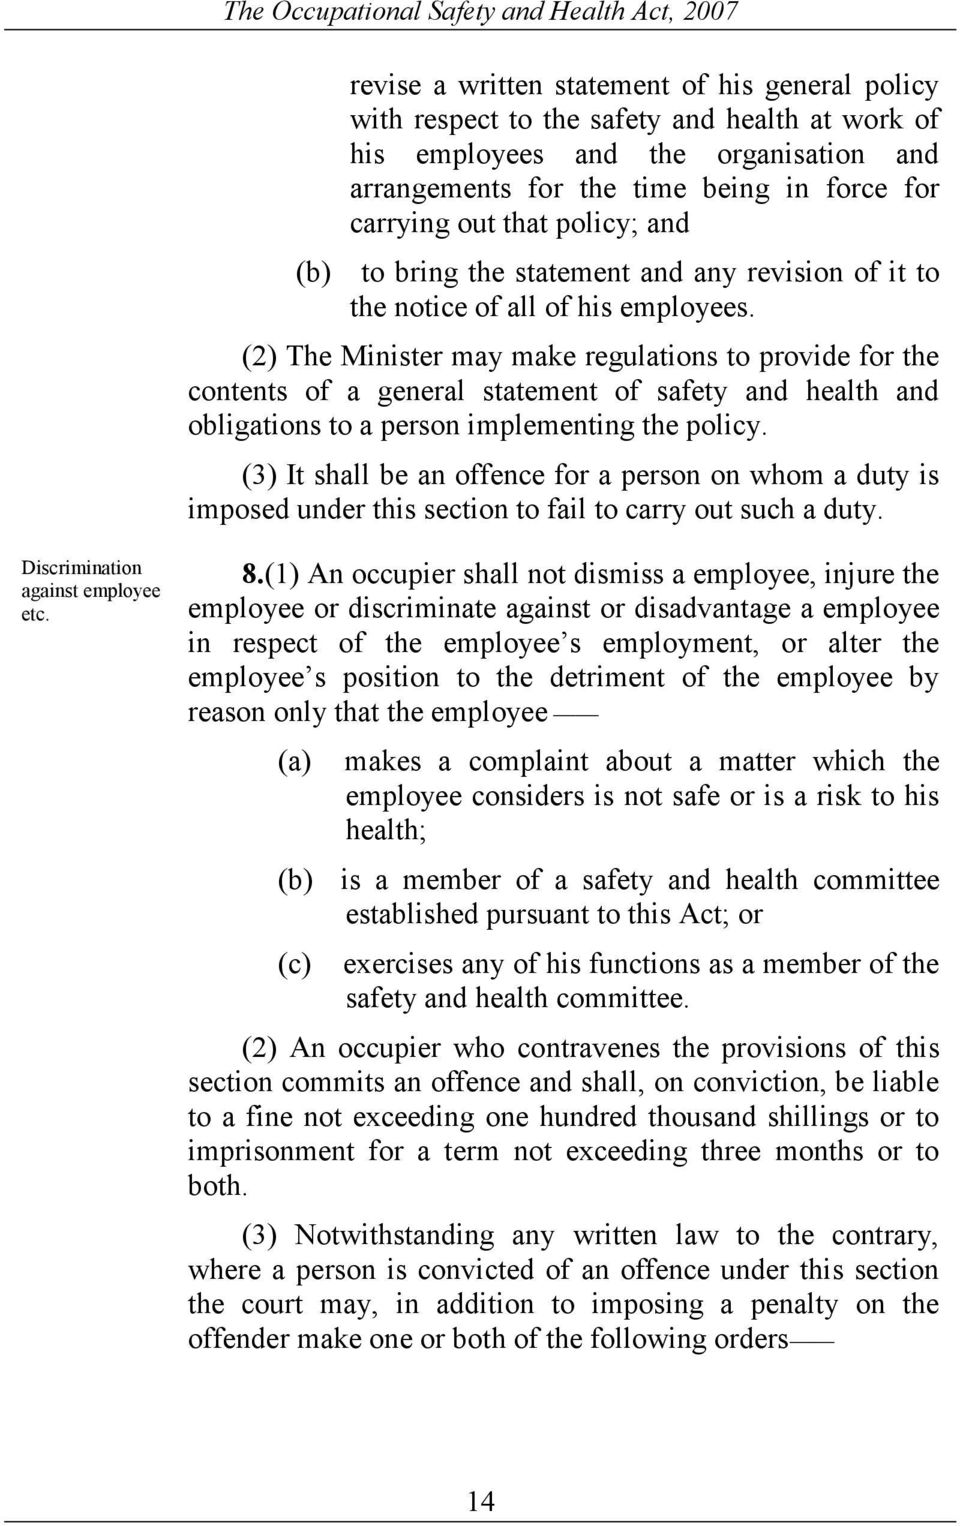 (2) The Minister may make regulations to provide for the contents of a general statement of safety and health and obligations to a person implementing the policy.